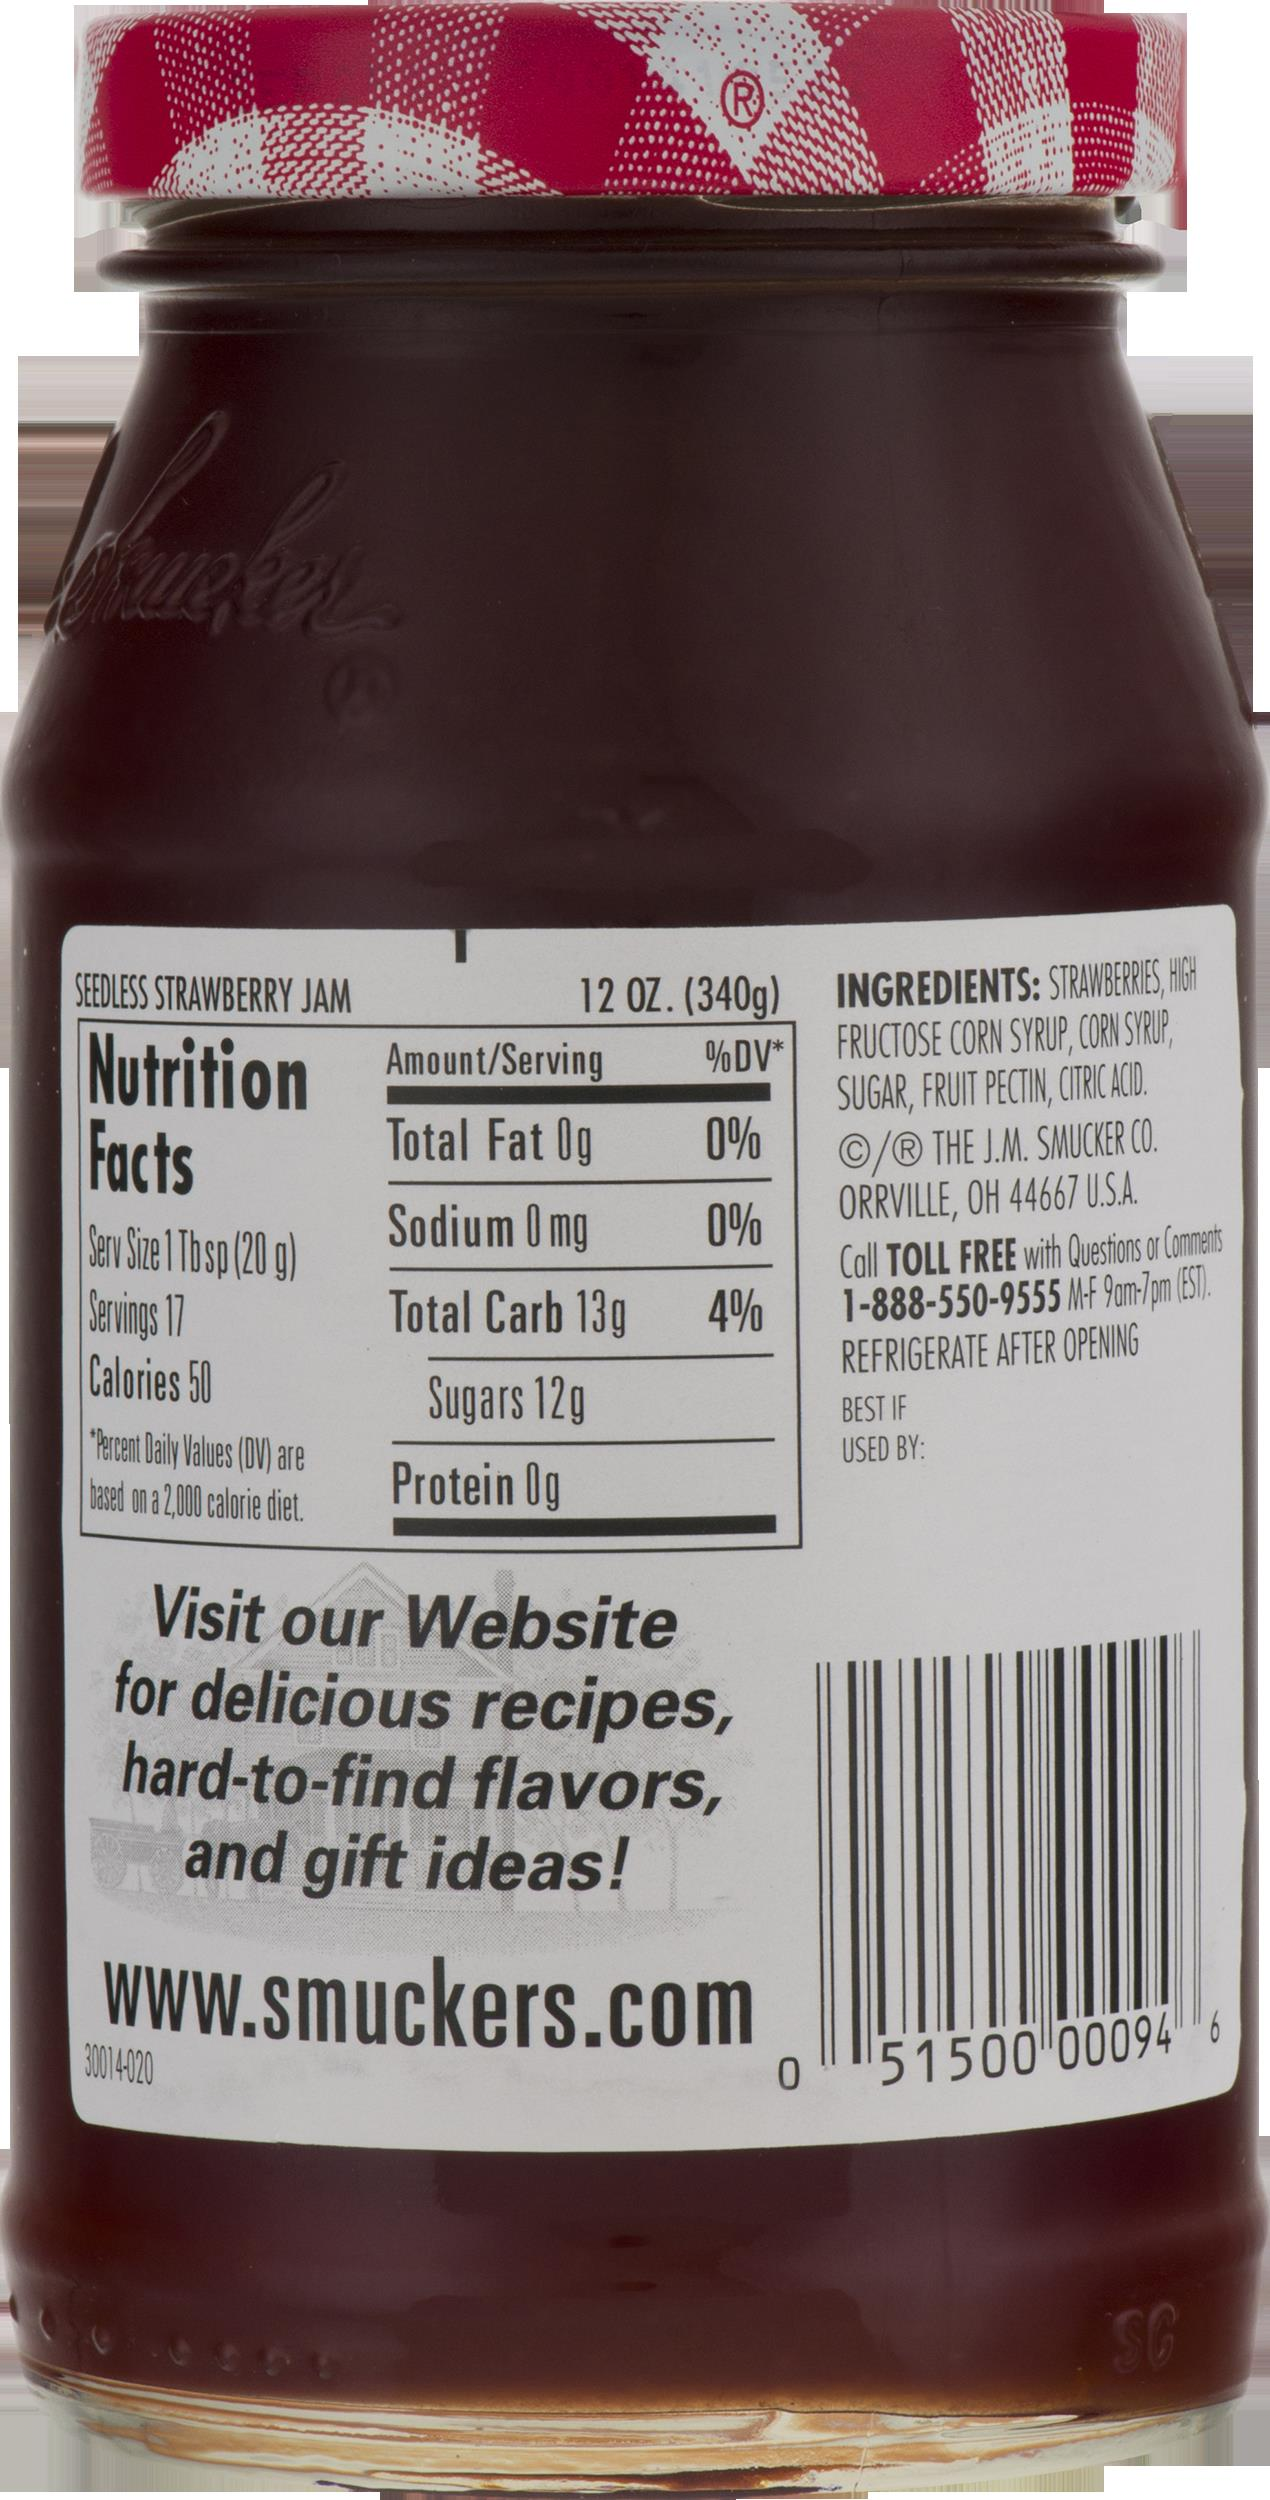 smuckers birthday label ; 10389f73-6b9c-4035-bcfd-0610a9c91e62_3